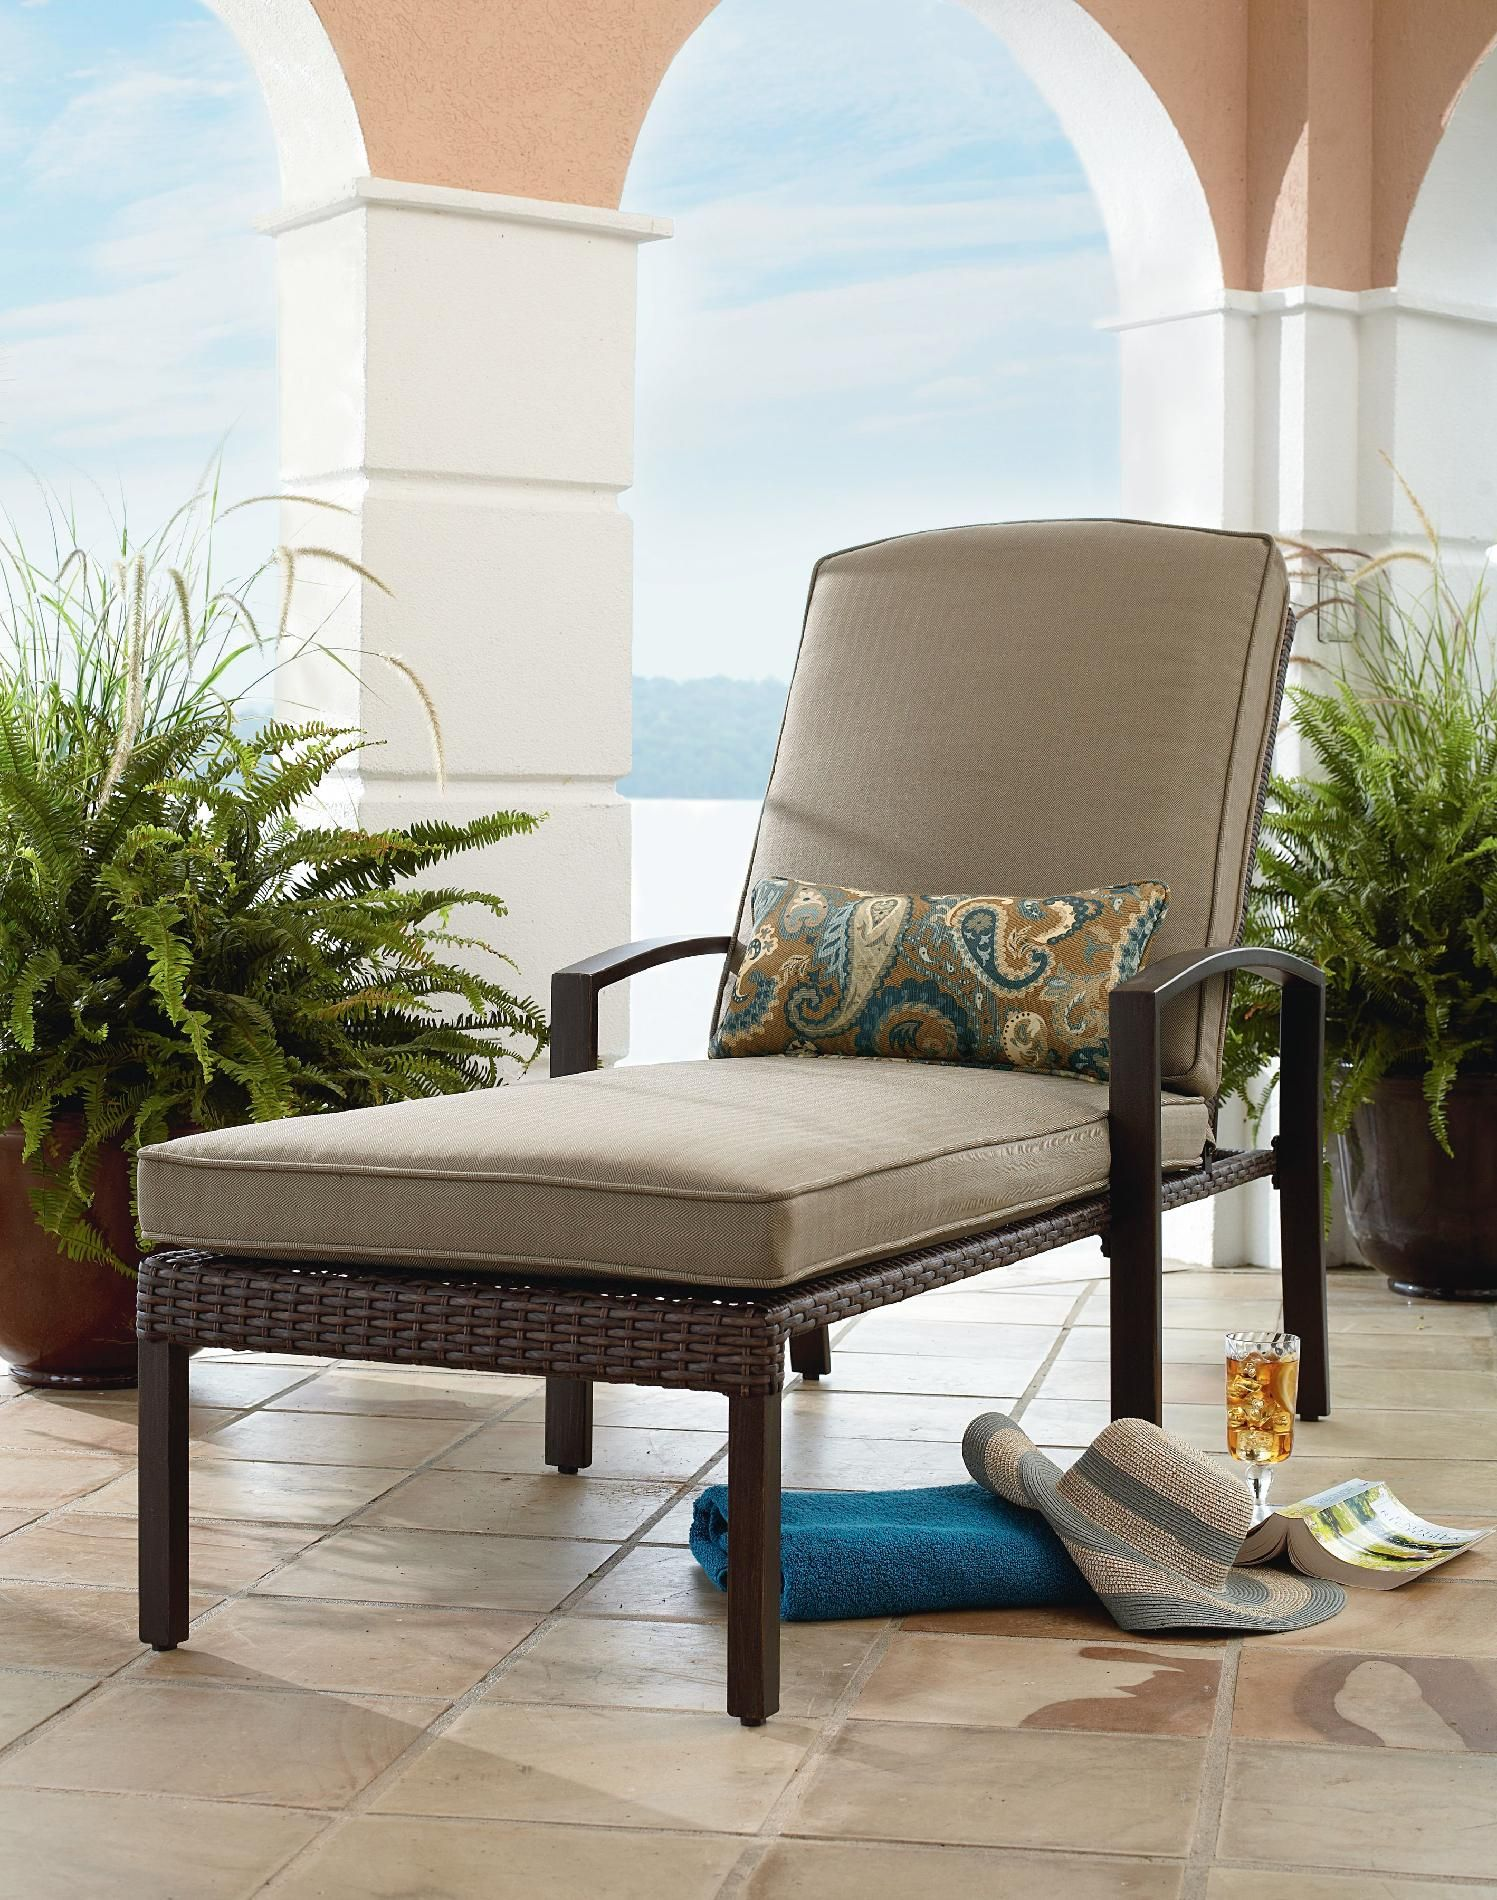 Chaise Lounge Patio Furniture Repair: Grand Resort River Oak Chaise Lounge